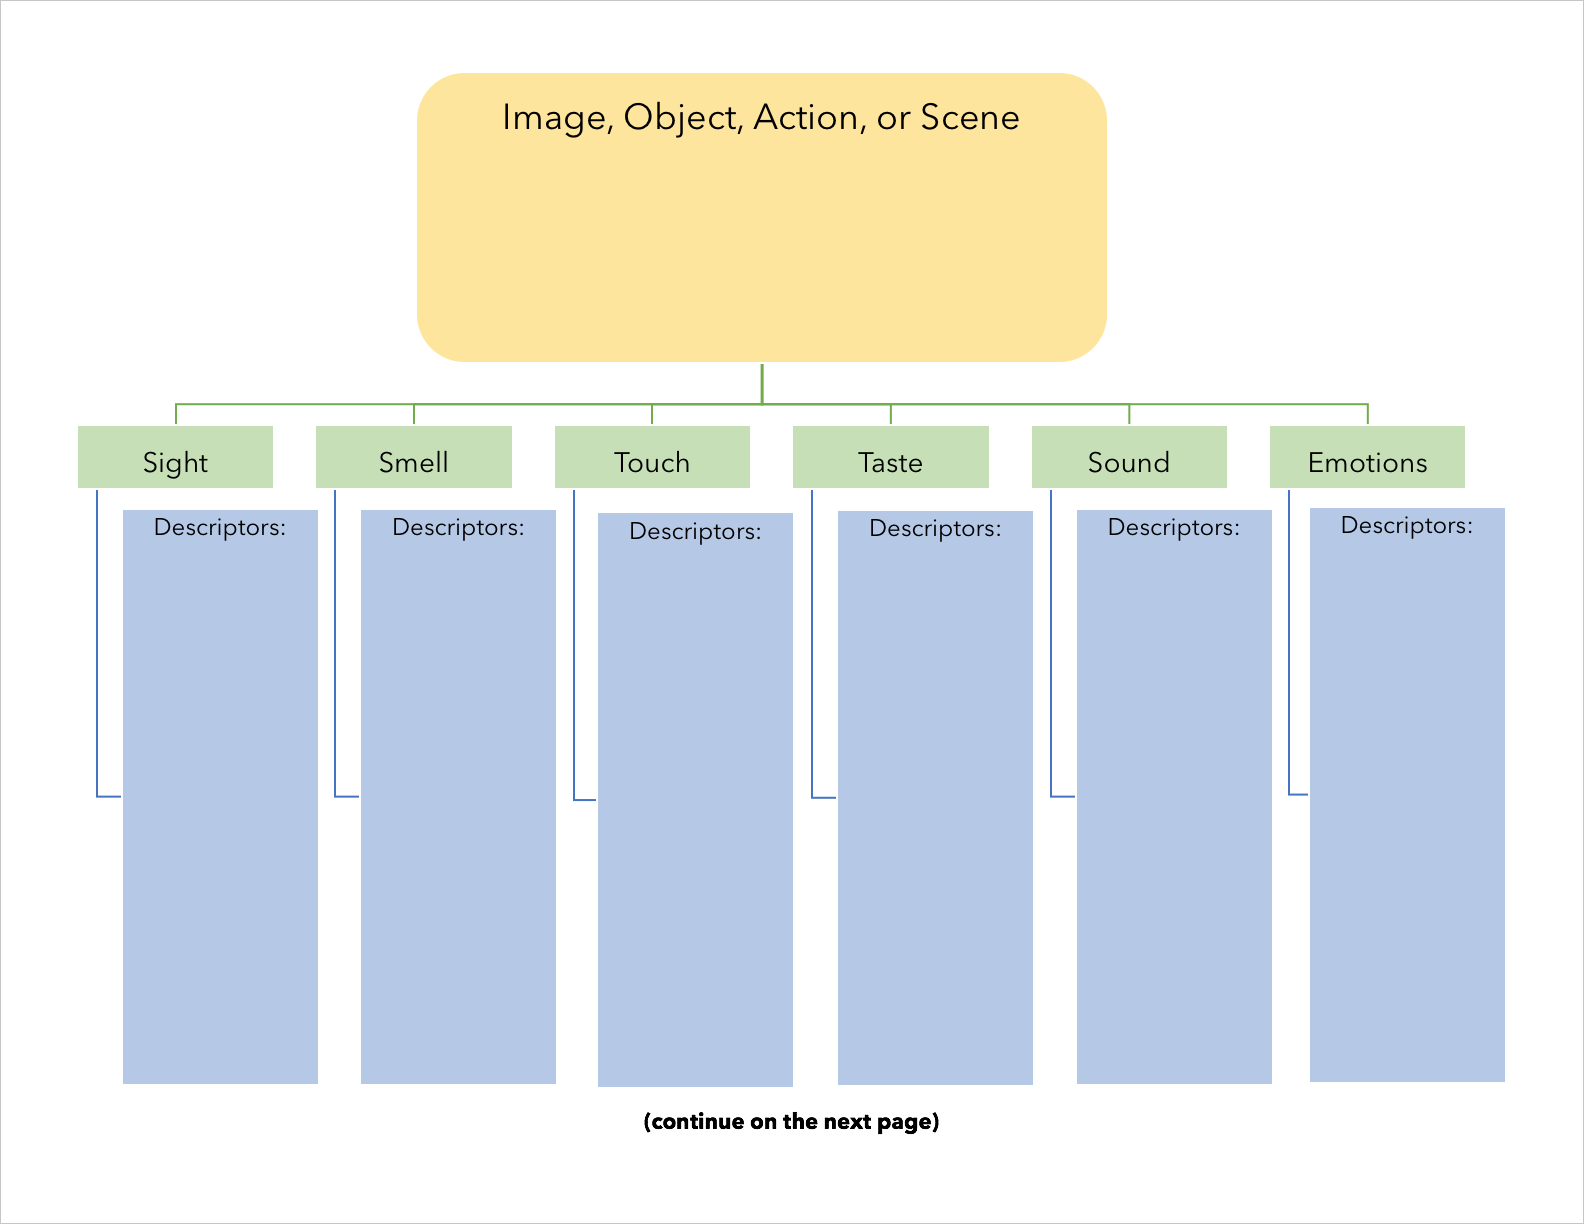 """Blank organizer chart - First page. One bubble says """"Image, Object, Action, or scene"""" and below it are boxes to be filled out with """"descriptors."""" These boxes are titled """"Sight, Smell, Touch, Taste, Sound, and Emotion"""" For more accessible version, contact pdxscholar@pdx.edu."""